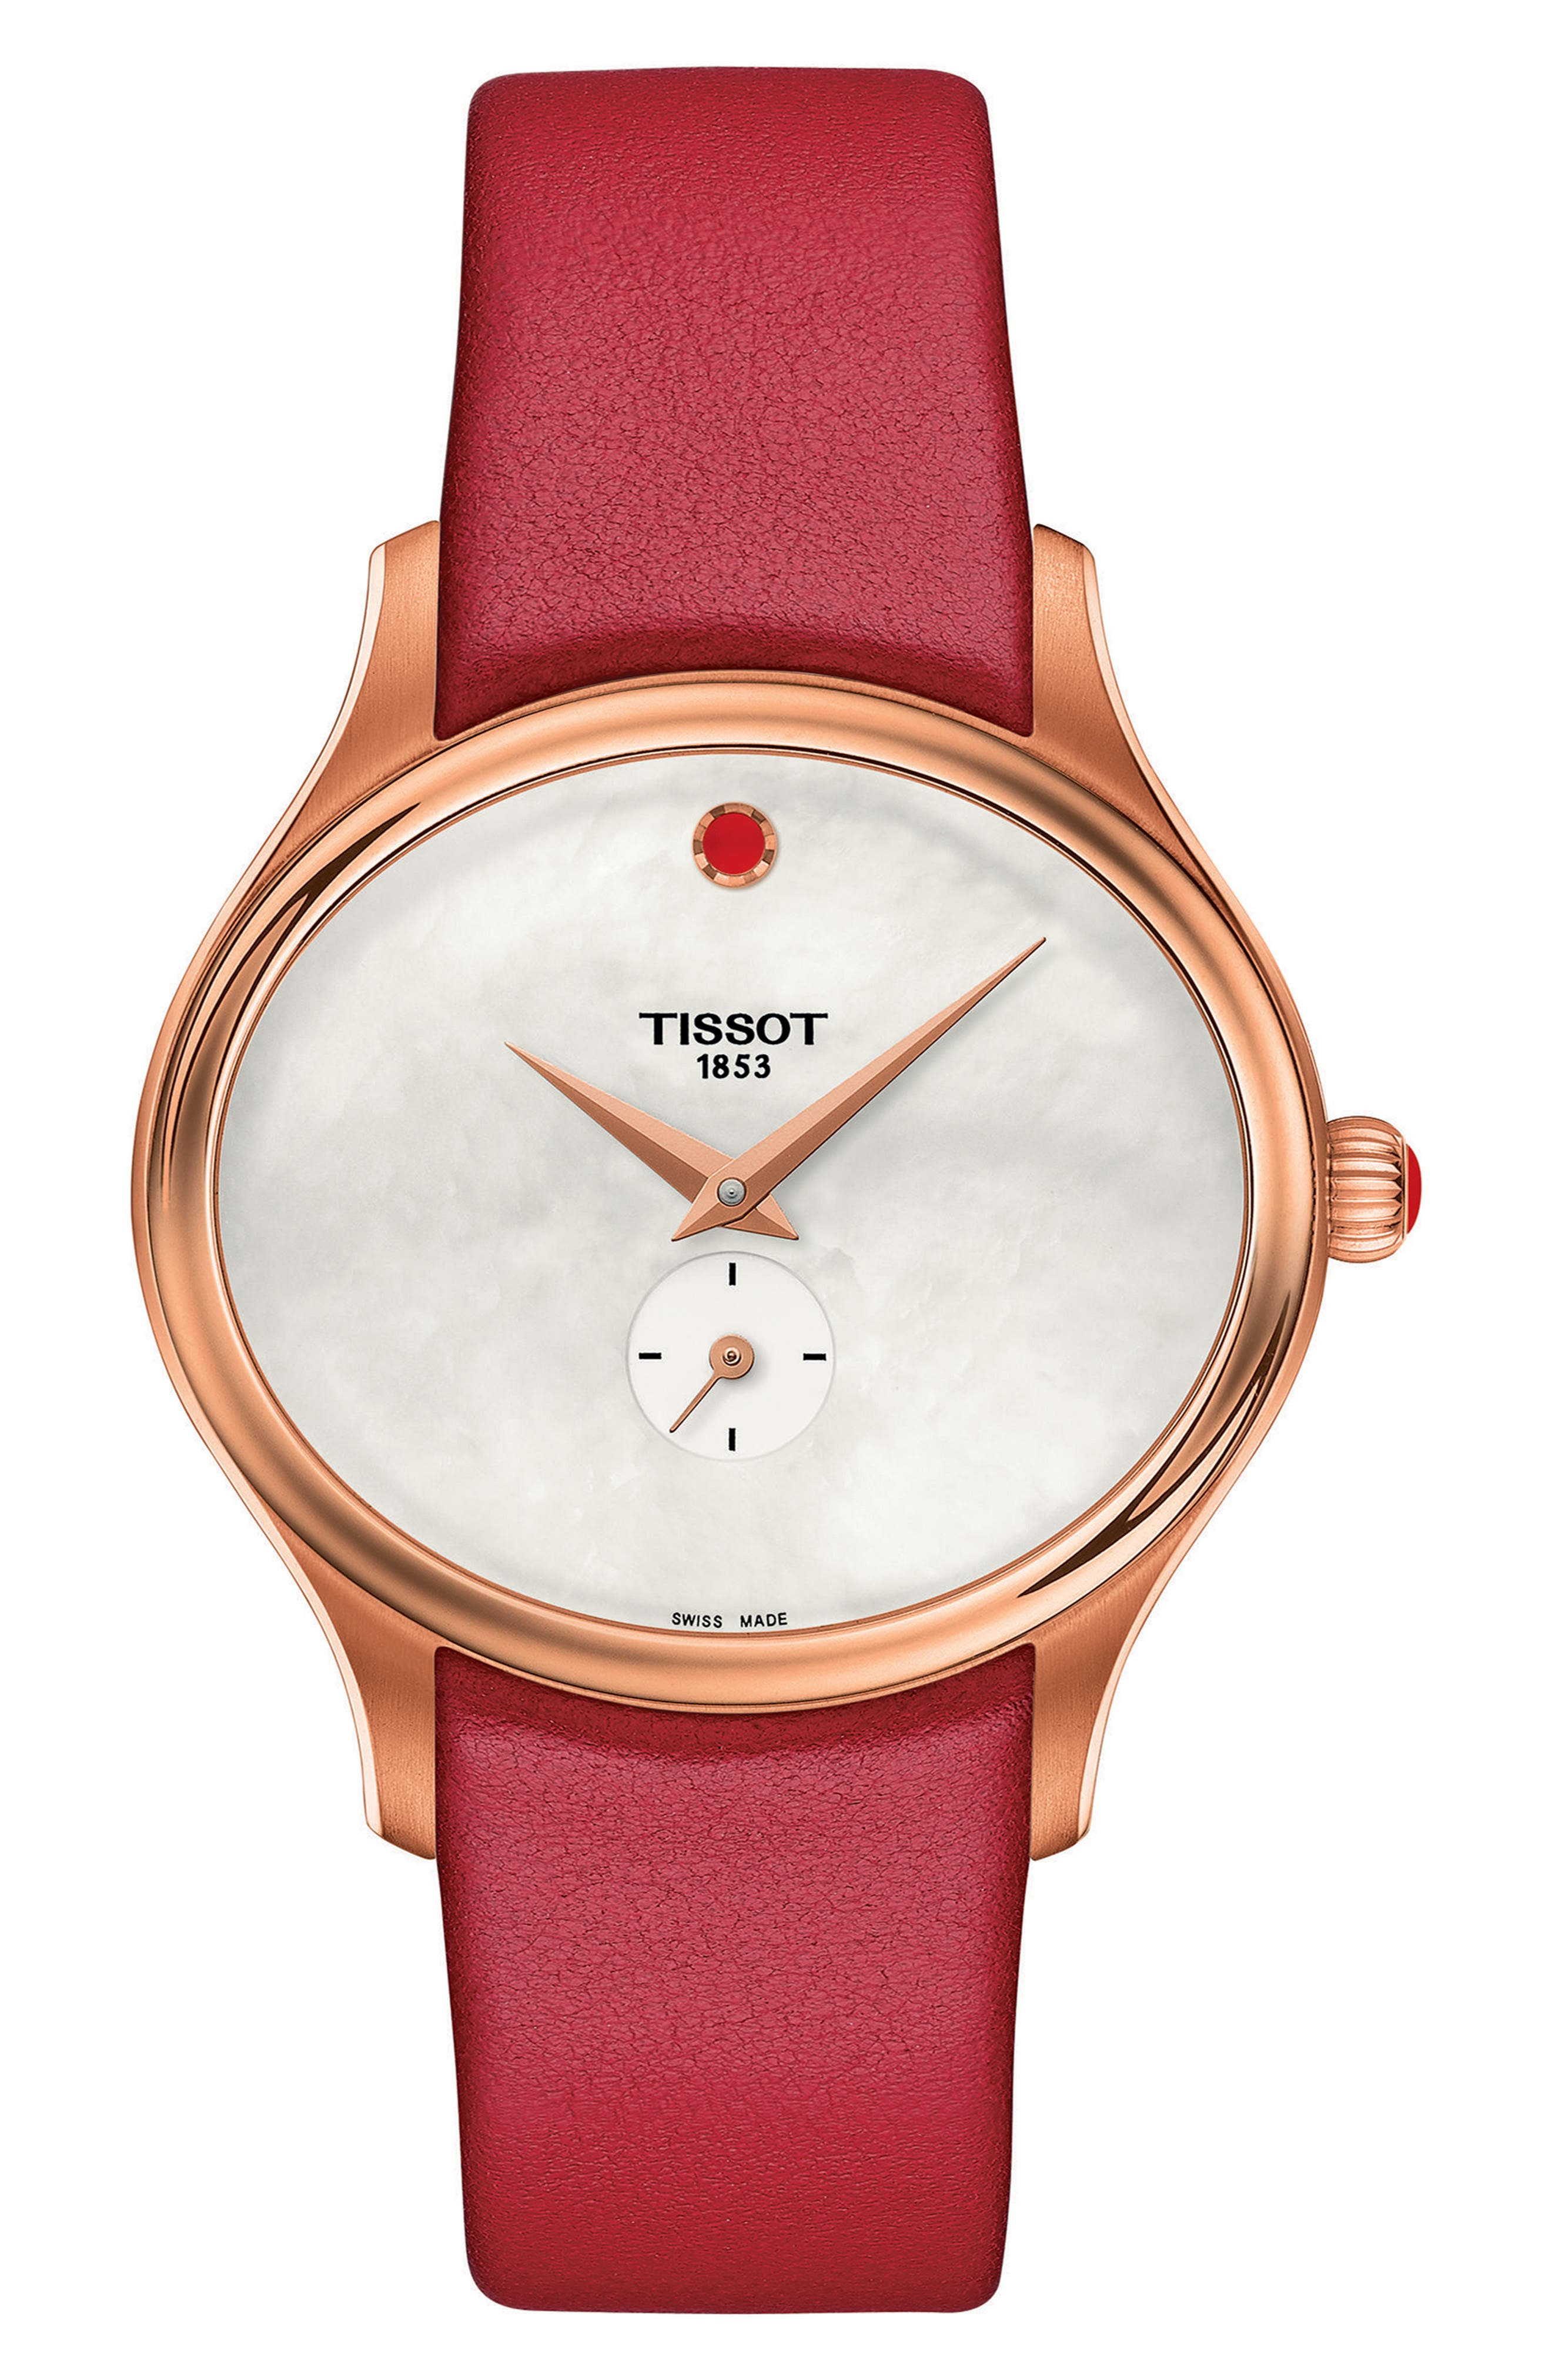 Alternate Image 1 Selected - Tissot Bella Ora Leather Strap Watch, 28mm x 31mm